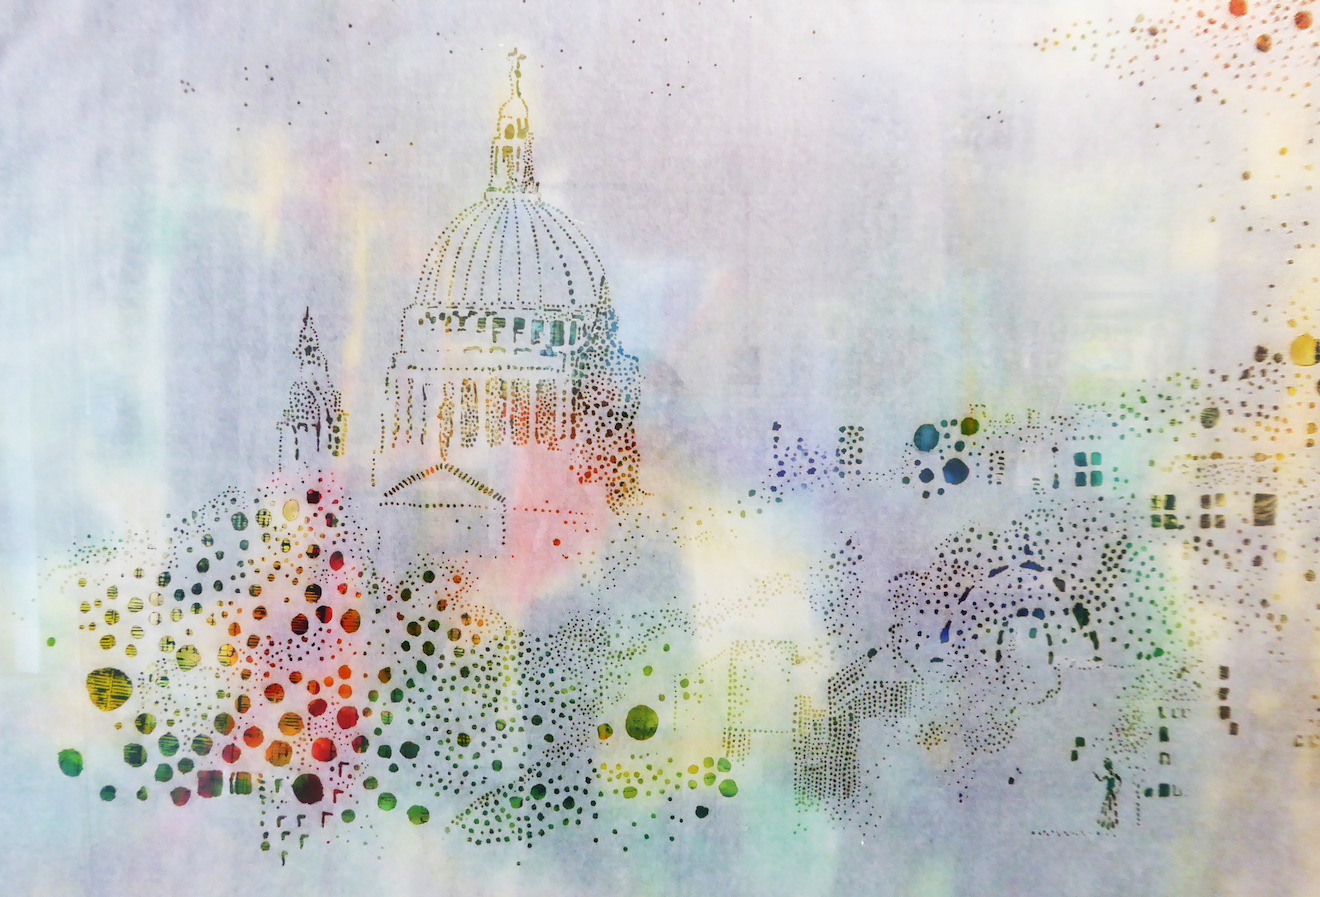 Nicola Anthony, Saint Paul's survives, Incense-burned calligraphy paper with ink drawing, 85cm x 115cm, 2016